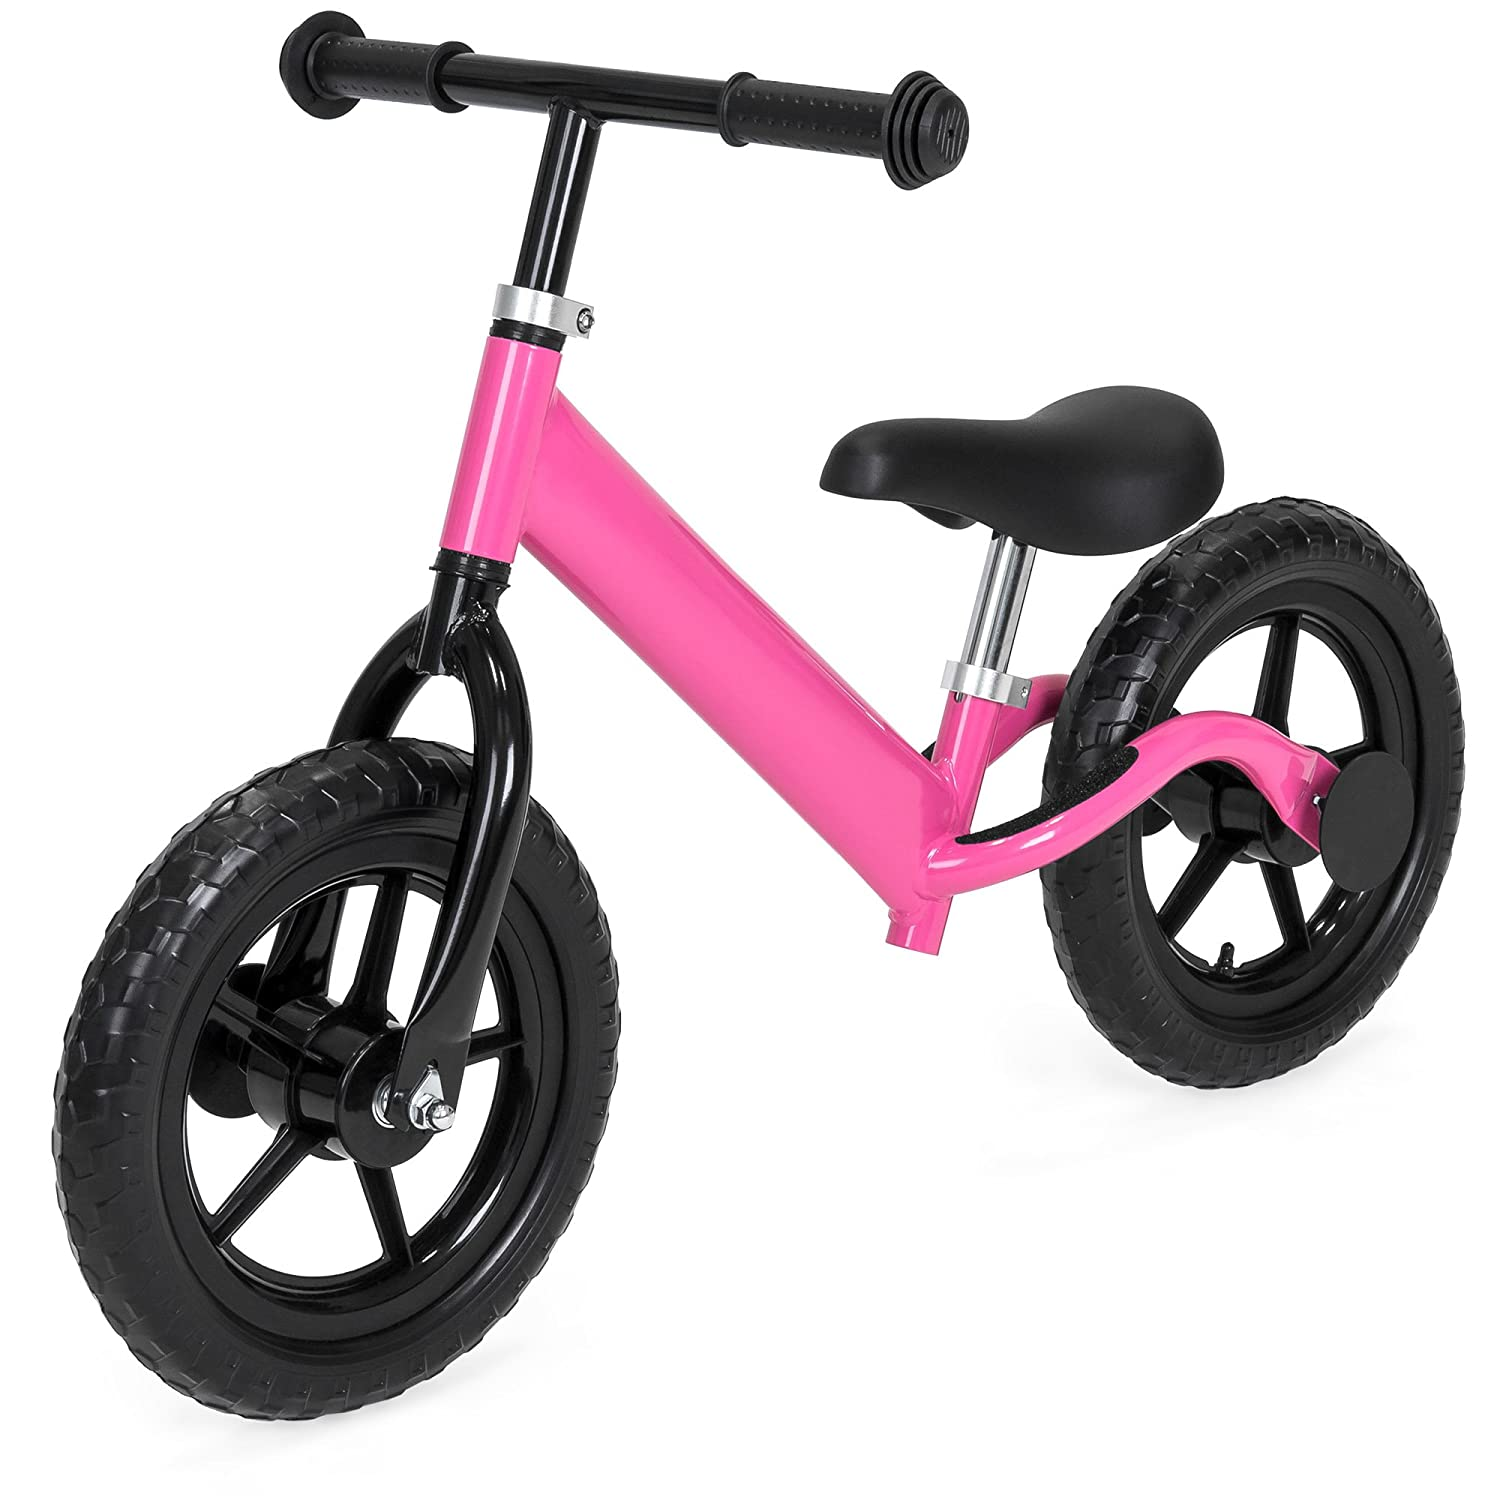 Best Choice Products Kids Self Balancing Walking Training Bicycle w/Foam Tires, Adjustable Seat and Handle Adjustable Seat and Handle - Black